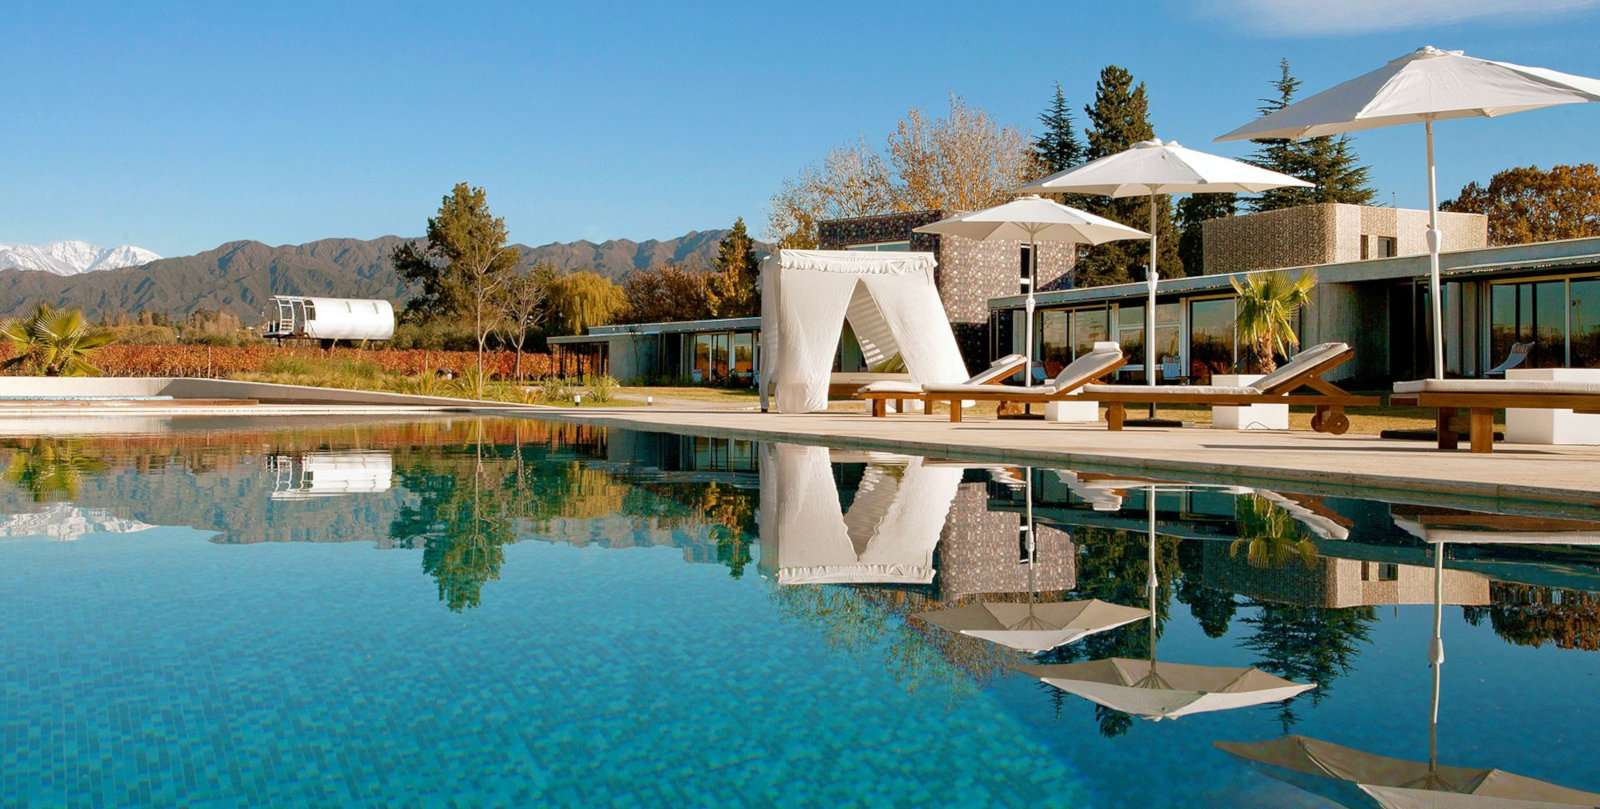 Luxury at the Entre Cielos gay hotel in Mendoza